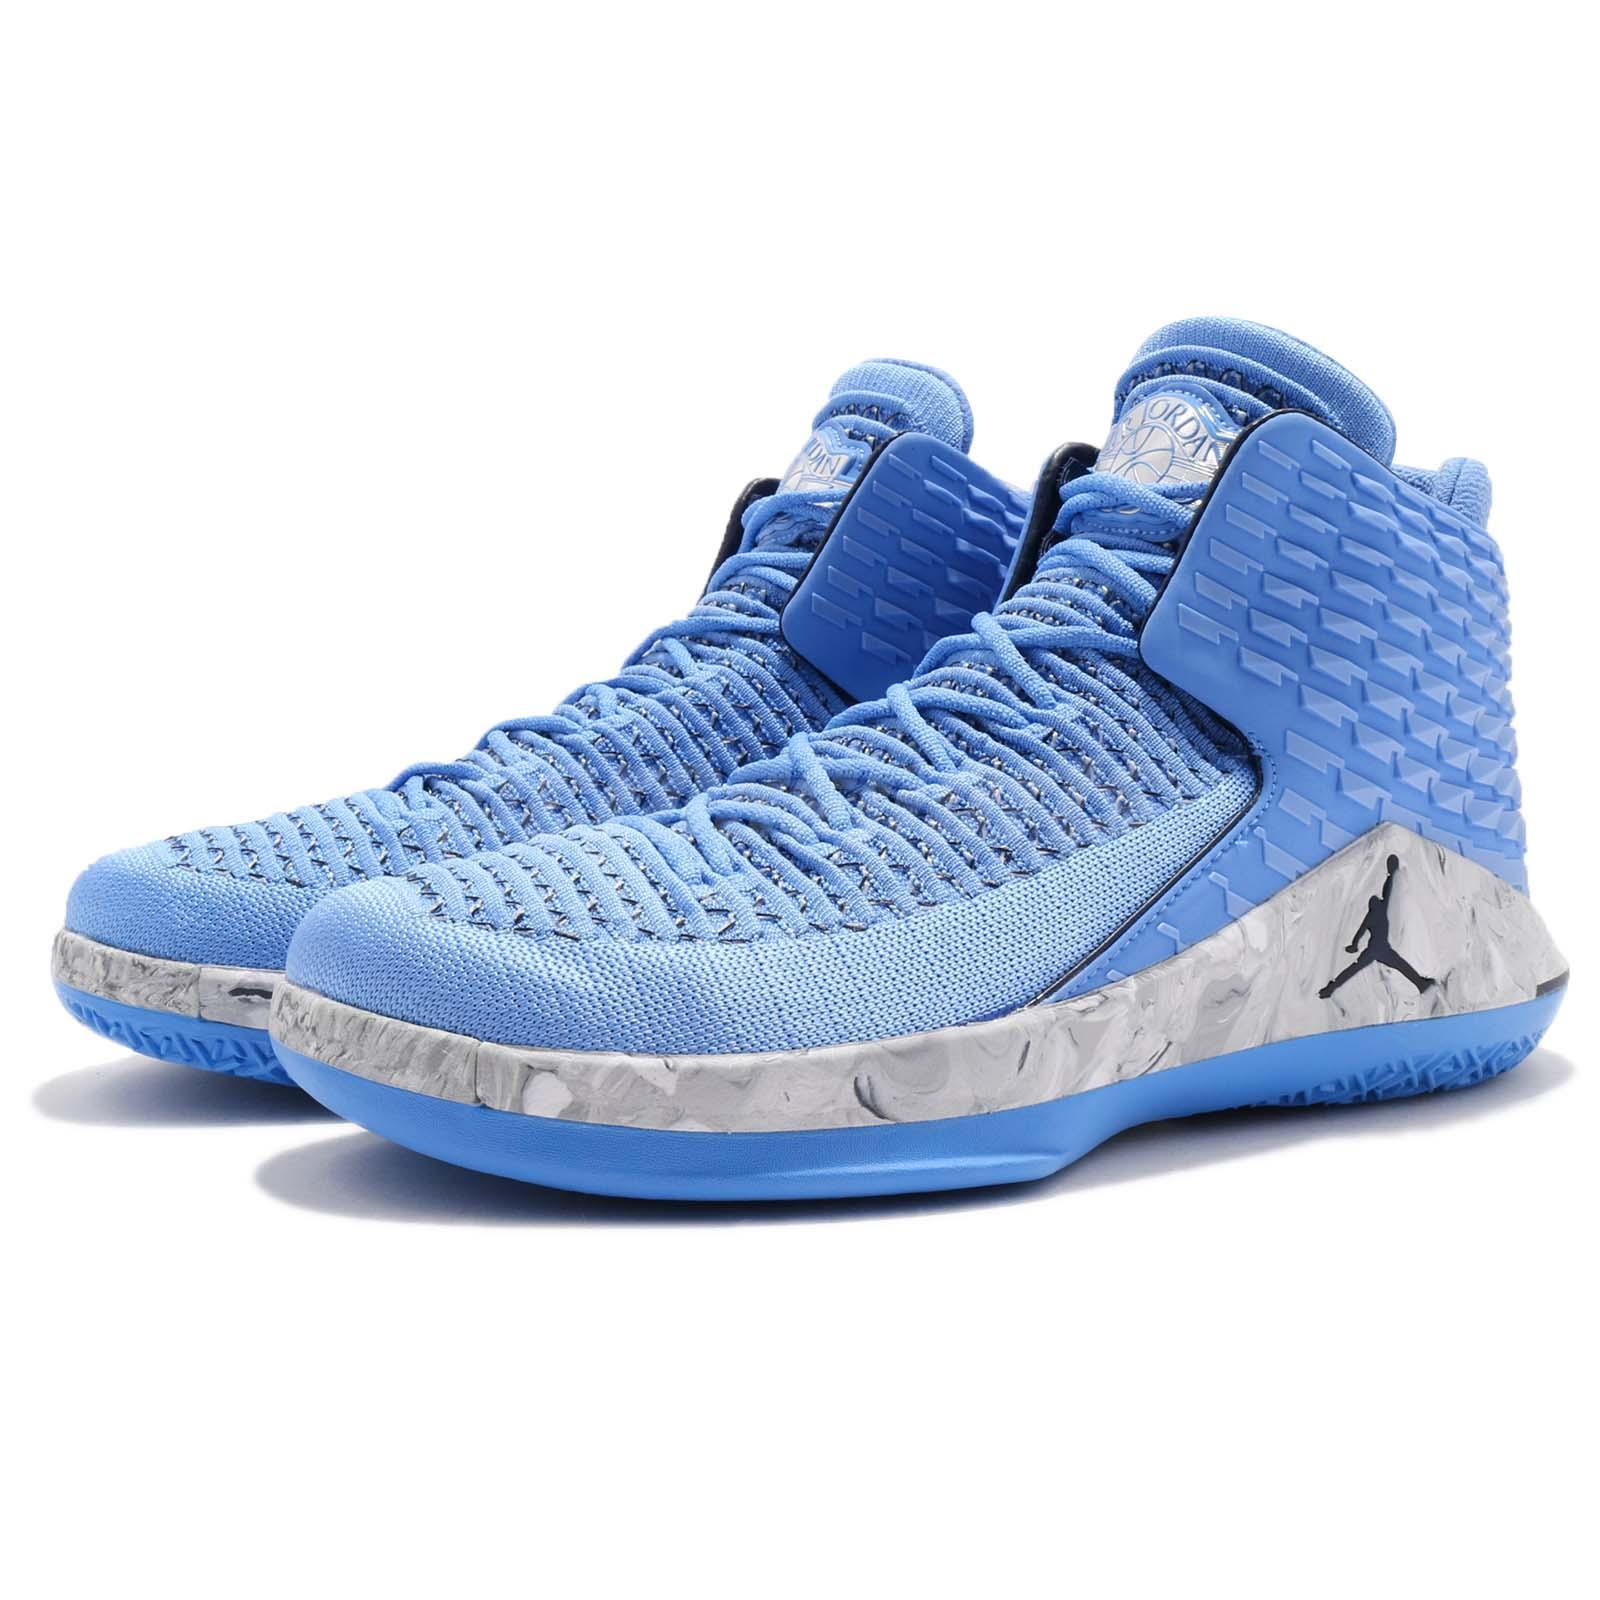 169cc6ac8939 ... Nike Air Jordan XXXII PF 32 UNC University Blue Asia Men Bas ...